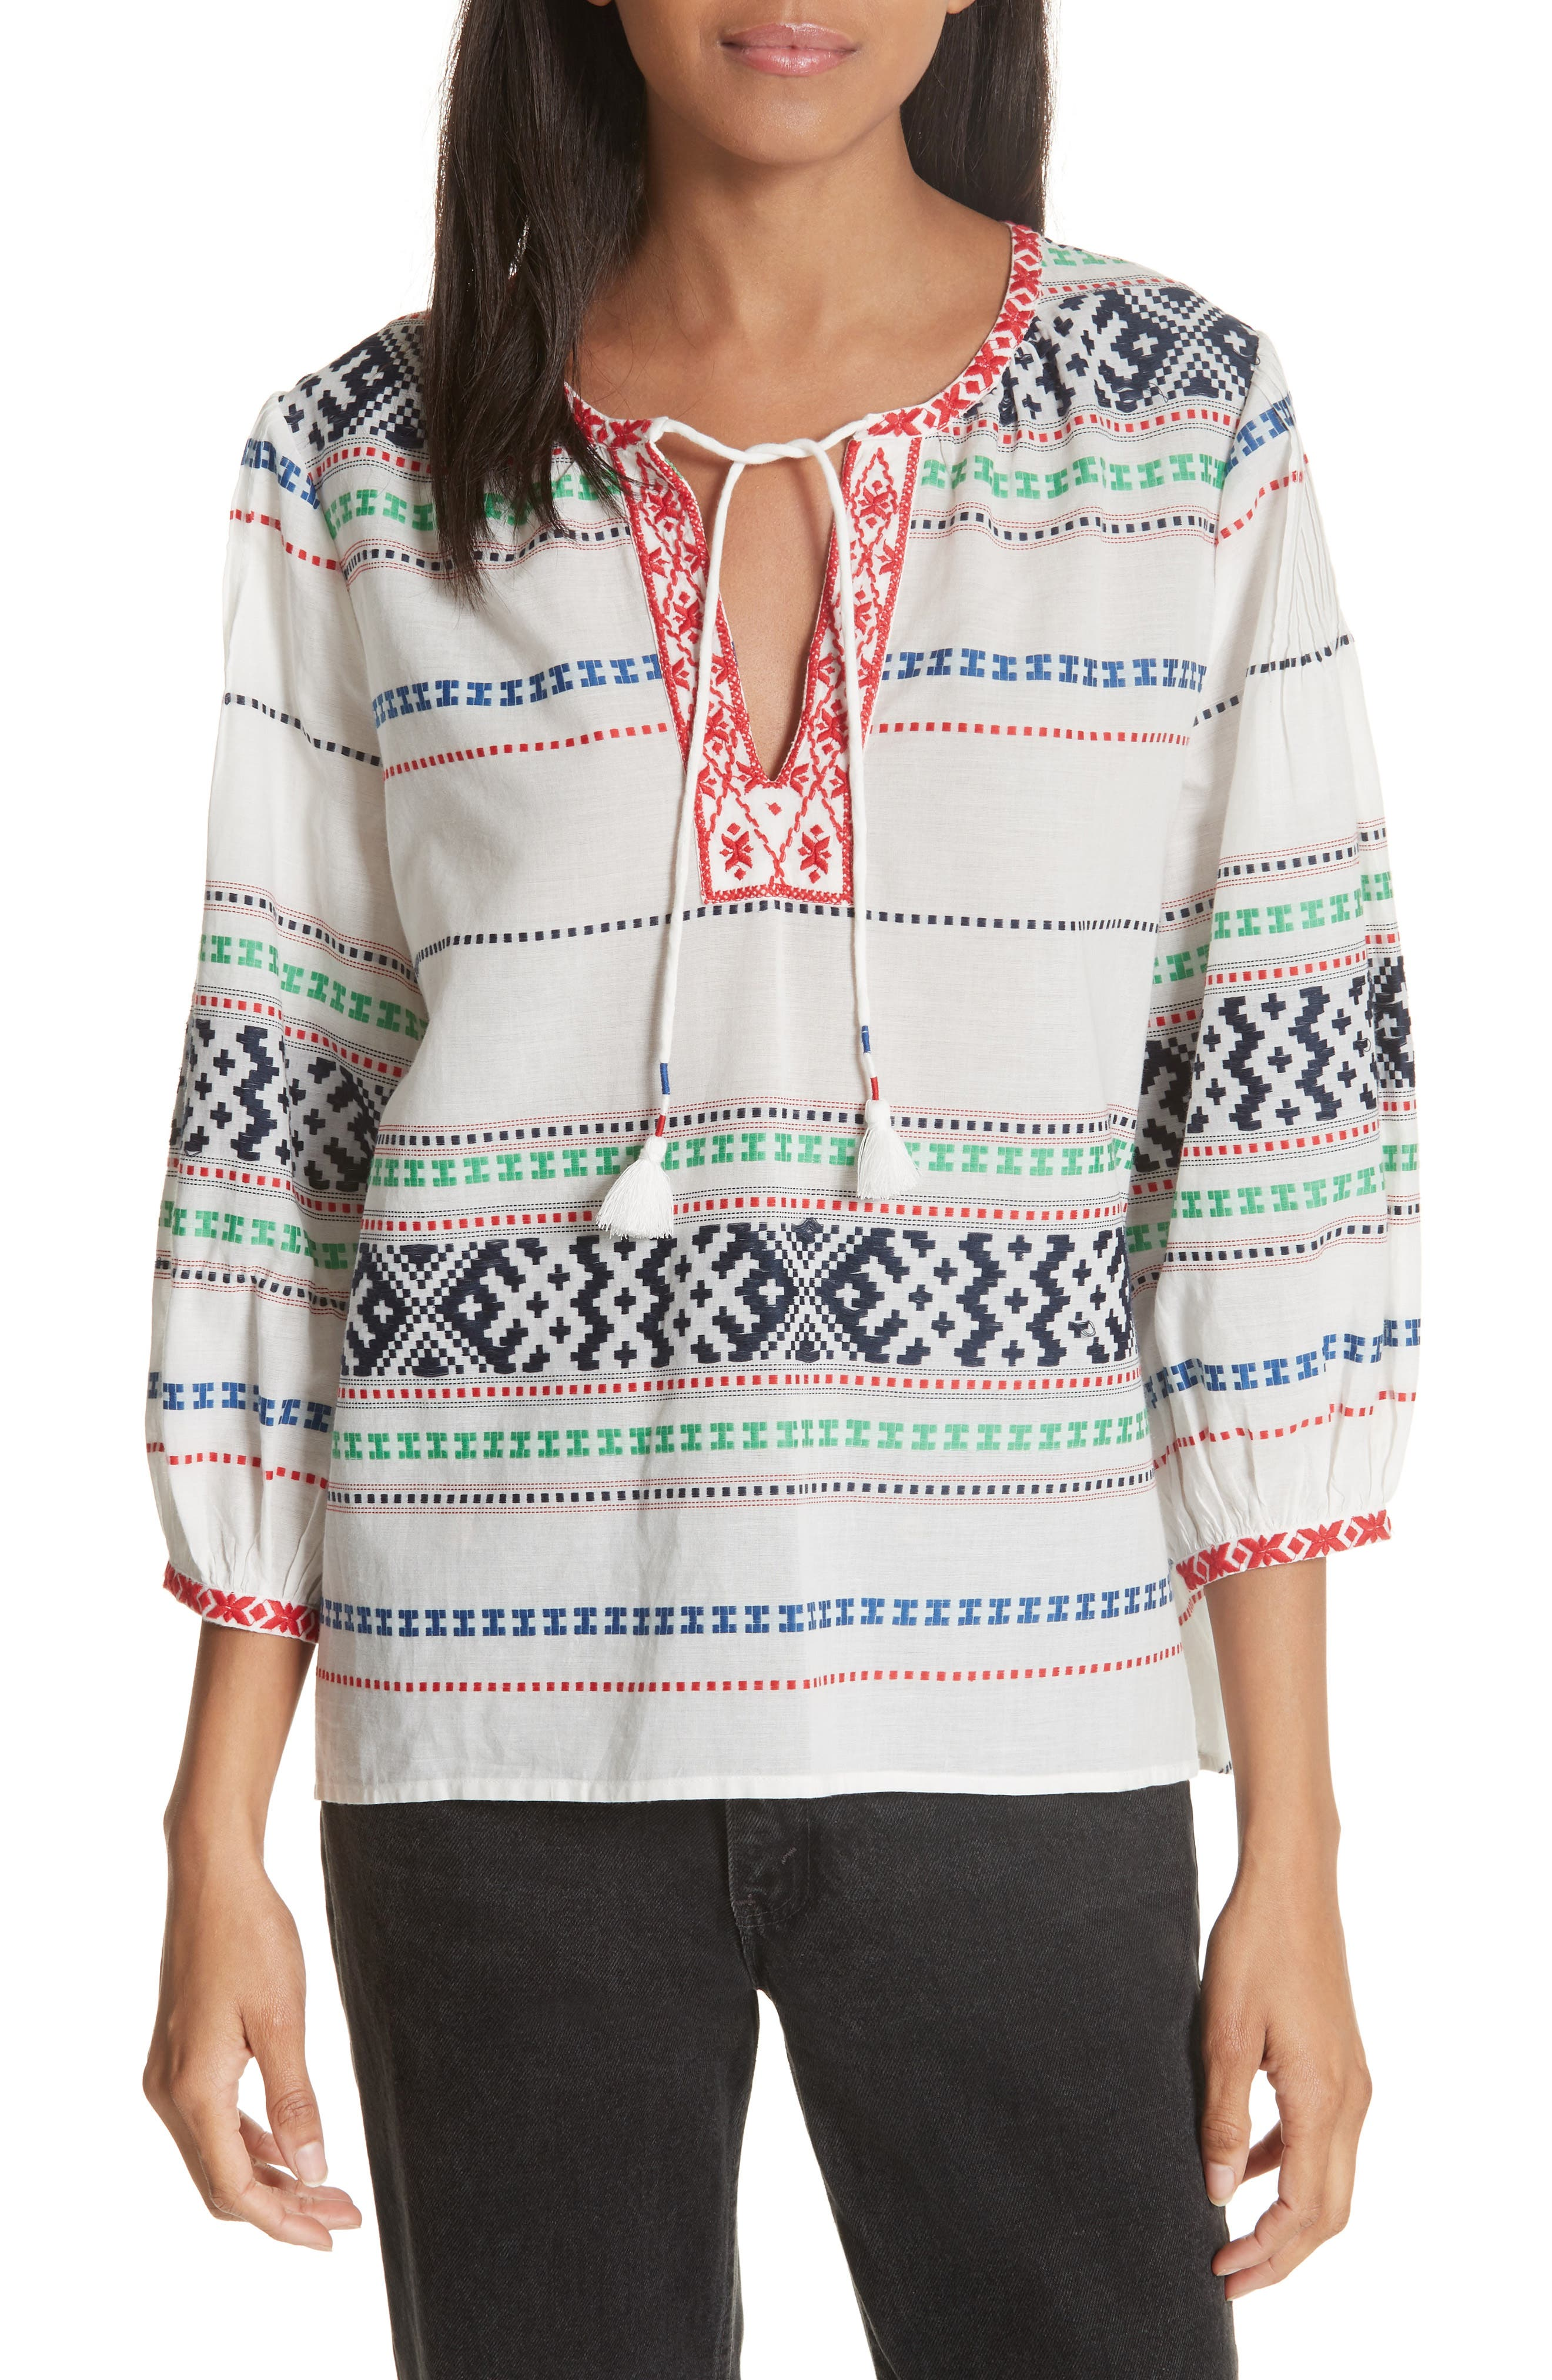 Jenollina Embroidered Top,                             Main thumbnail 1, color,                             114